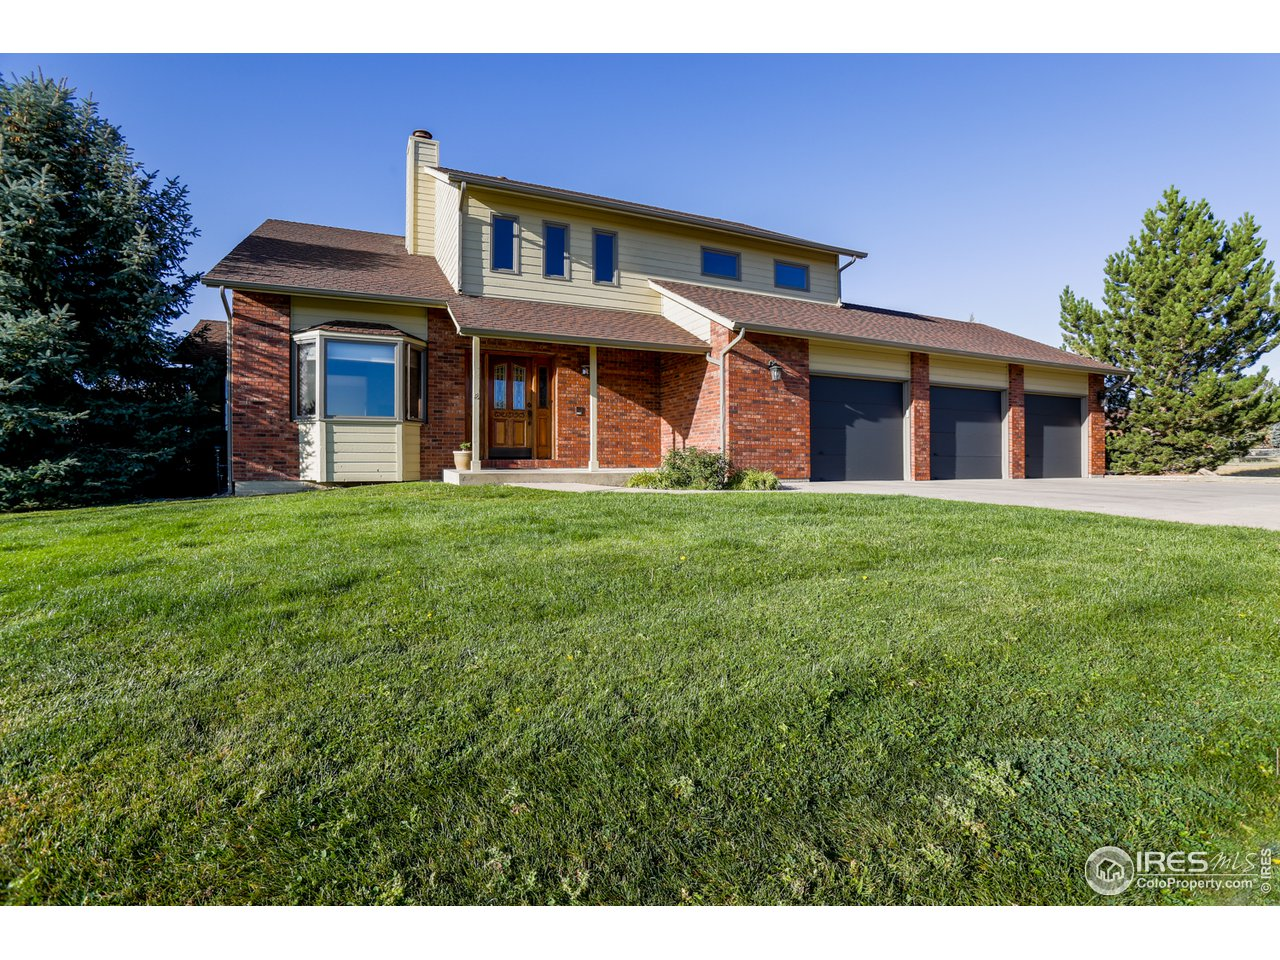 Wonderful home on 2.3 acres backing to Open Space